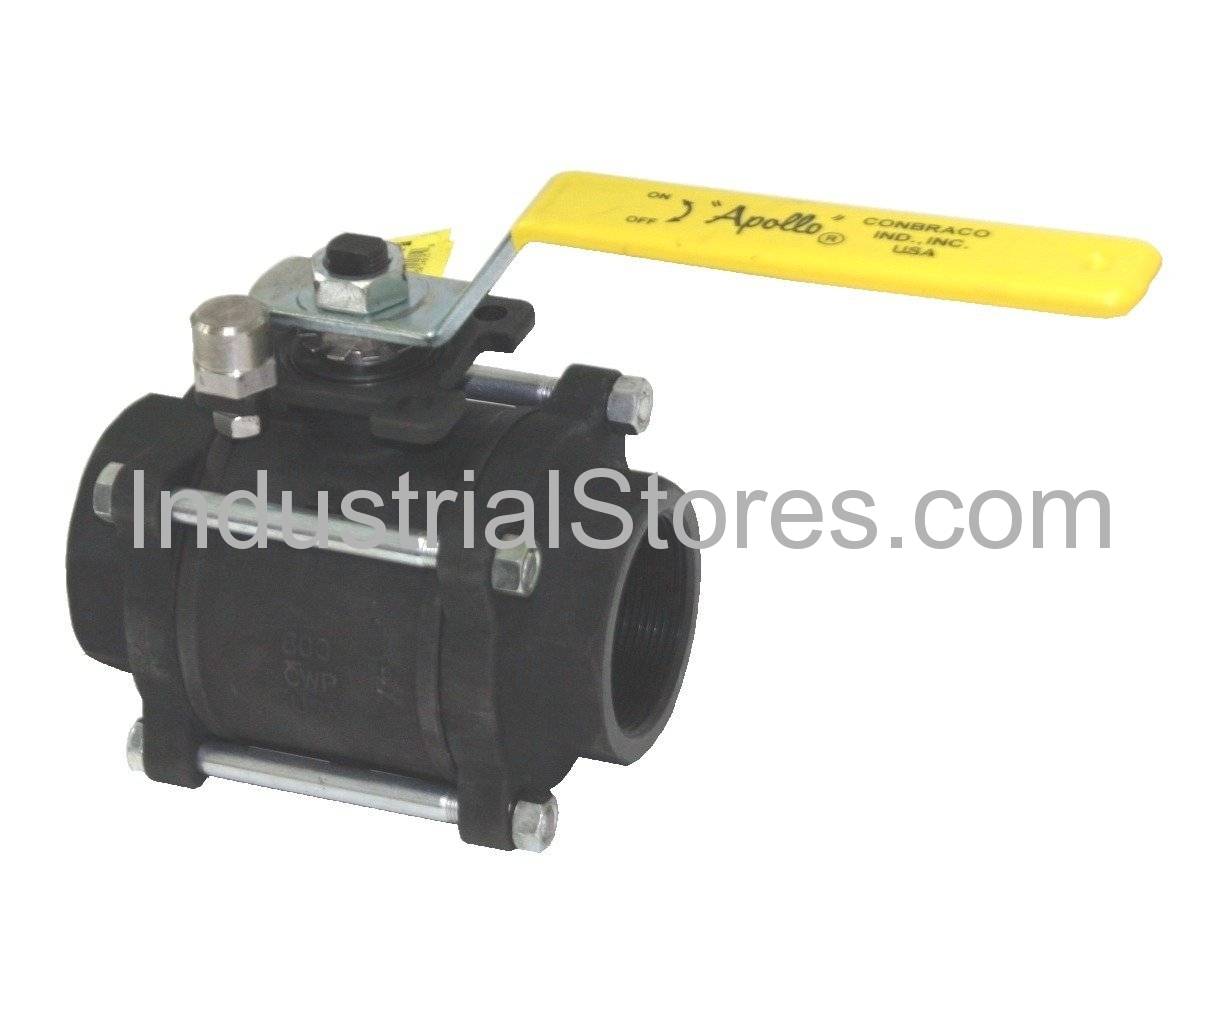 Conbraco 83R-148-01 Carbon Steel 3-Piece Full Port Ball Valve with Actuator Ready ISO Mounting Pad 2""